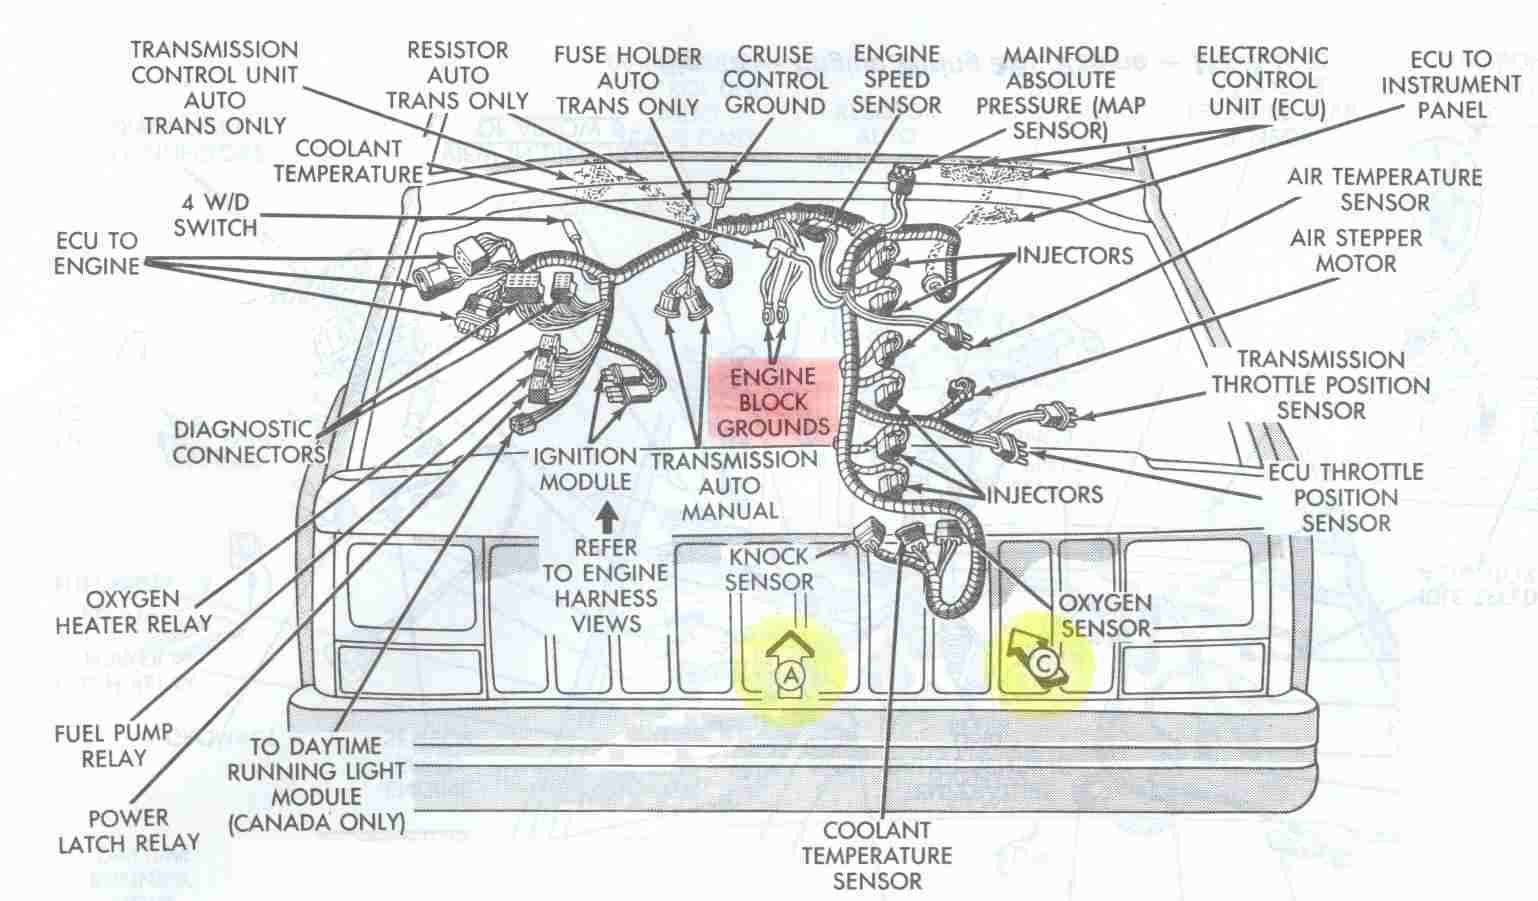 Engine Bay Schematic Showing Major Electrical Ground